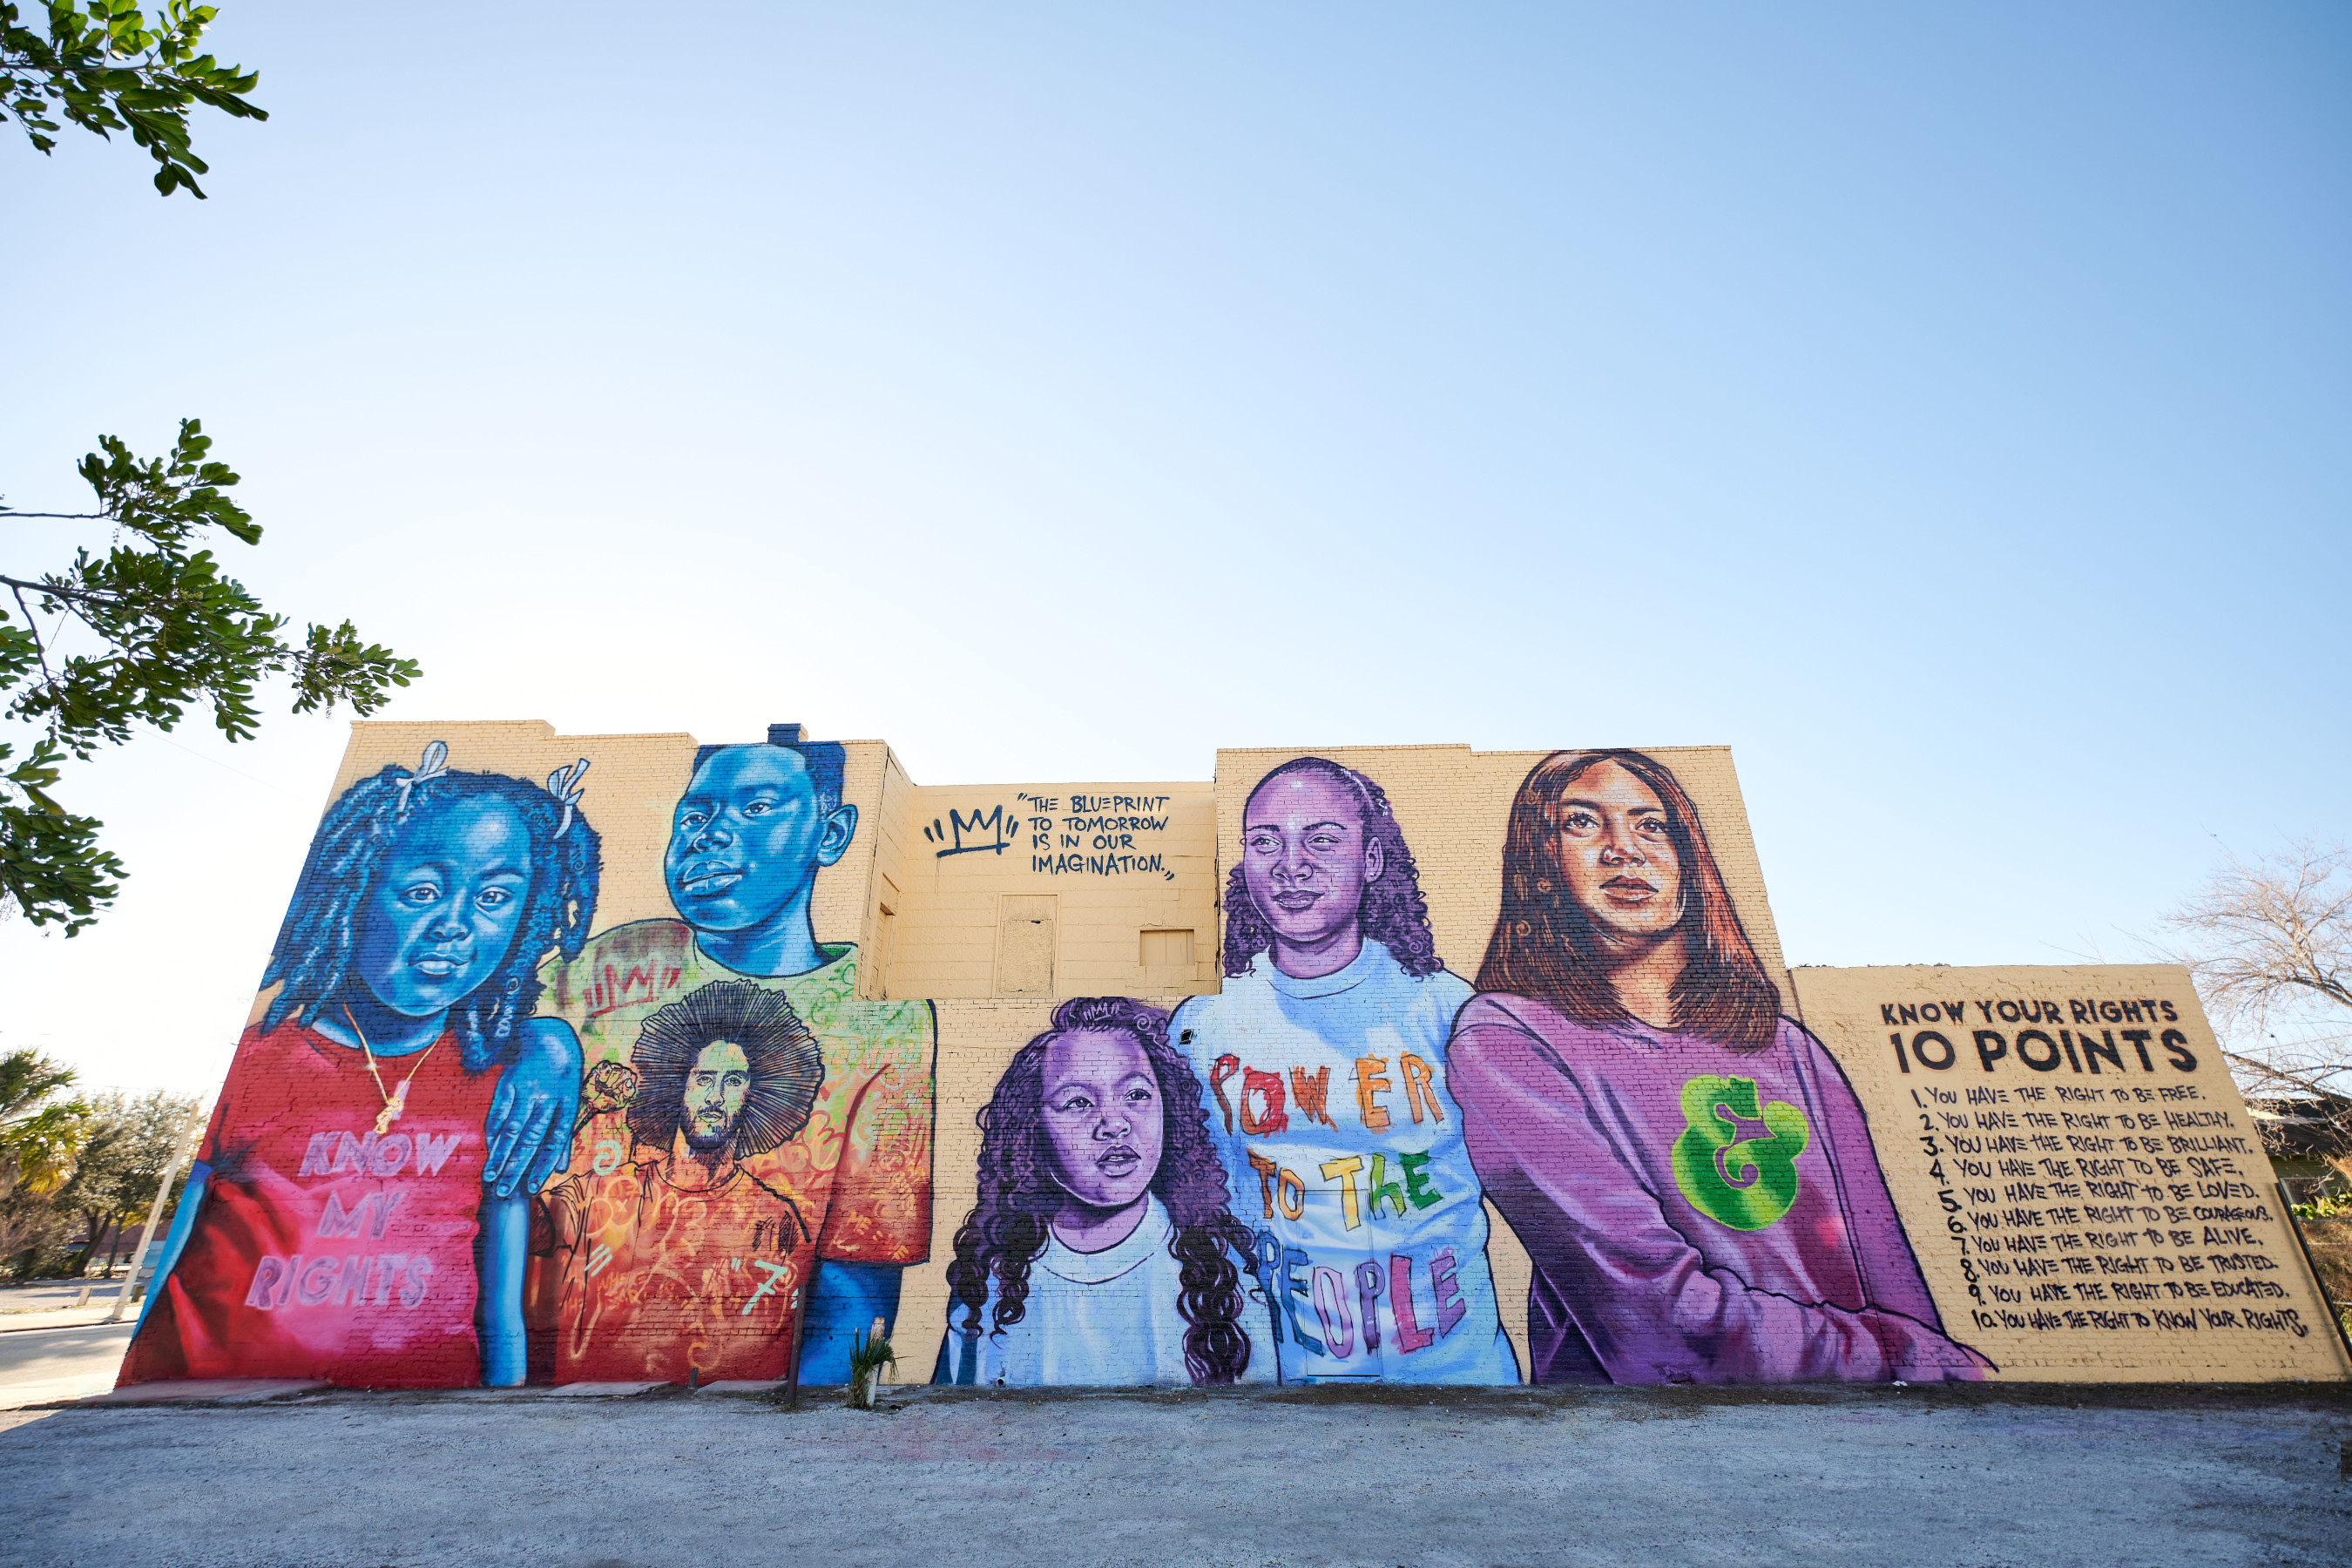 """Change the Whirled"" was unveiled in Tampa today to honor Colin Kaepernick's courageous fight against police violence and systemic racism. The mural was a collaboration among Ben & Jerry's, Colin Kaepernick's Know Your Rights Camp, and artist Brandan ""BMike"" Odums."